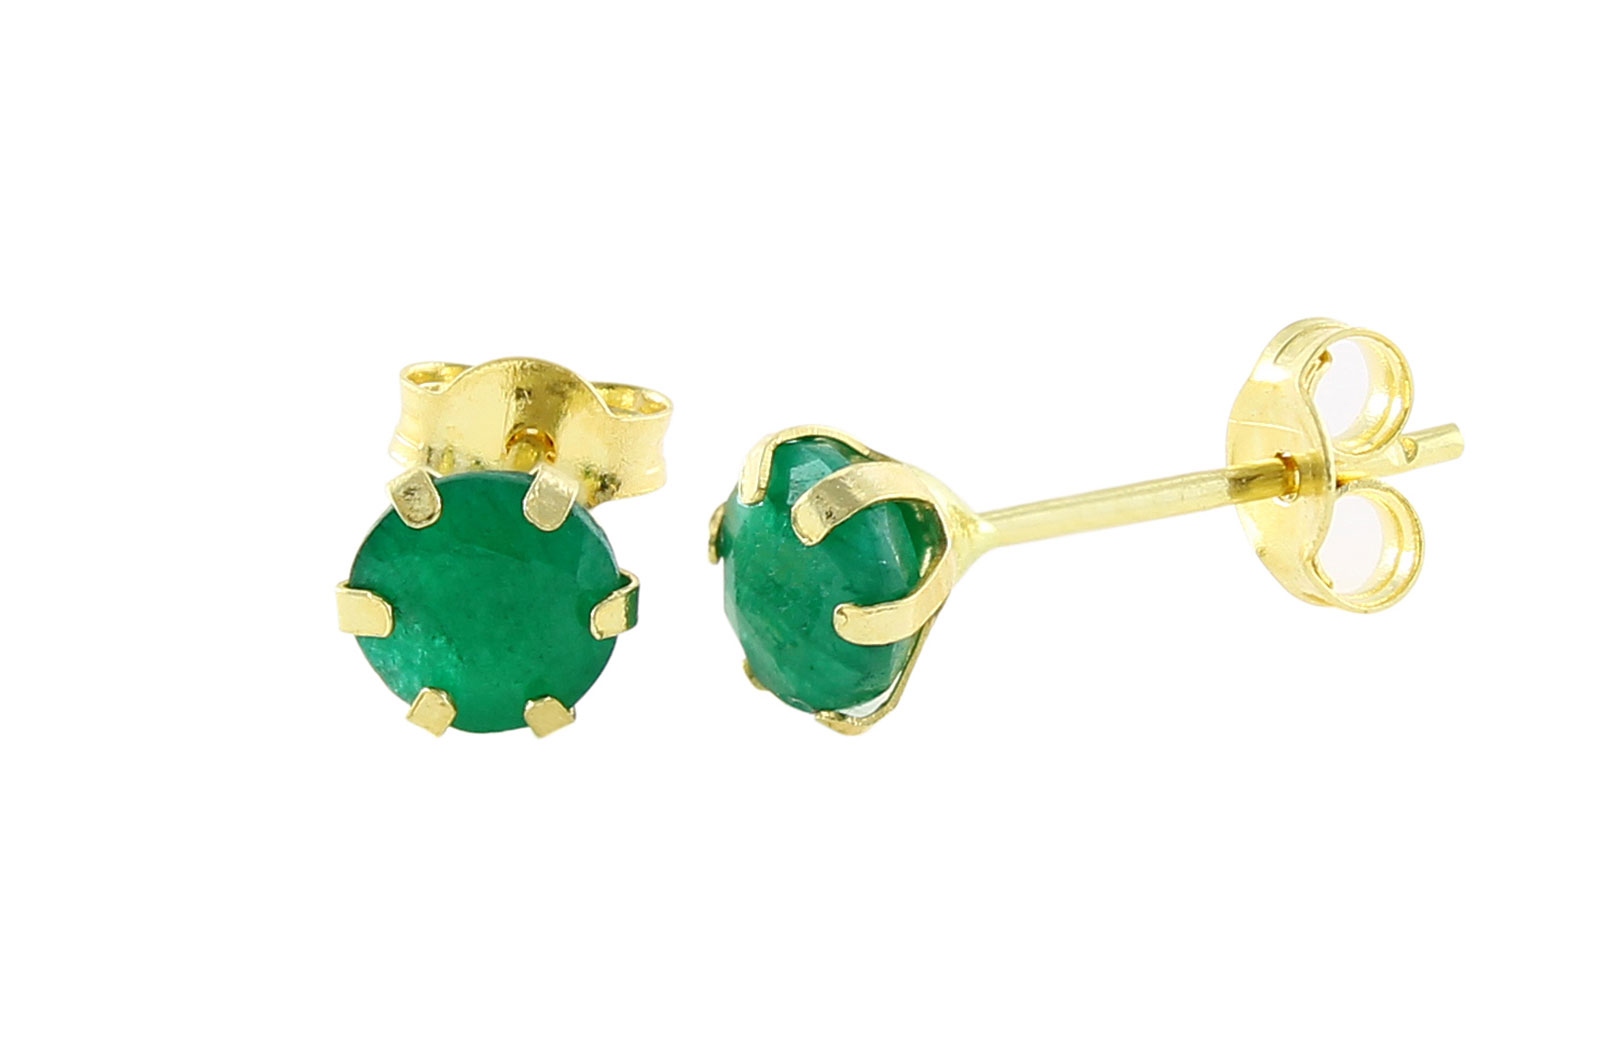 Vera Perla 18K Solid Yellow Gold and 4mm Genuine Emeralds Earrings